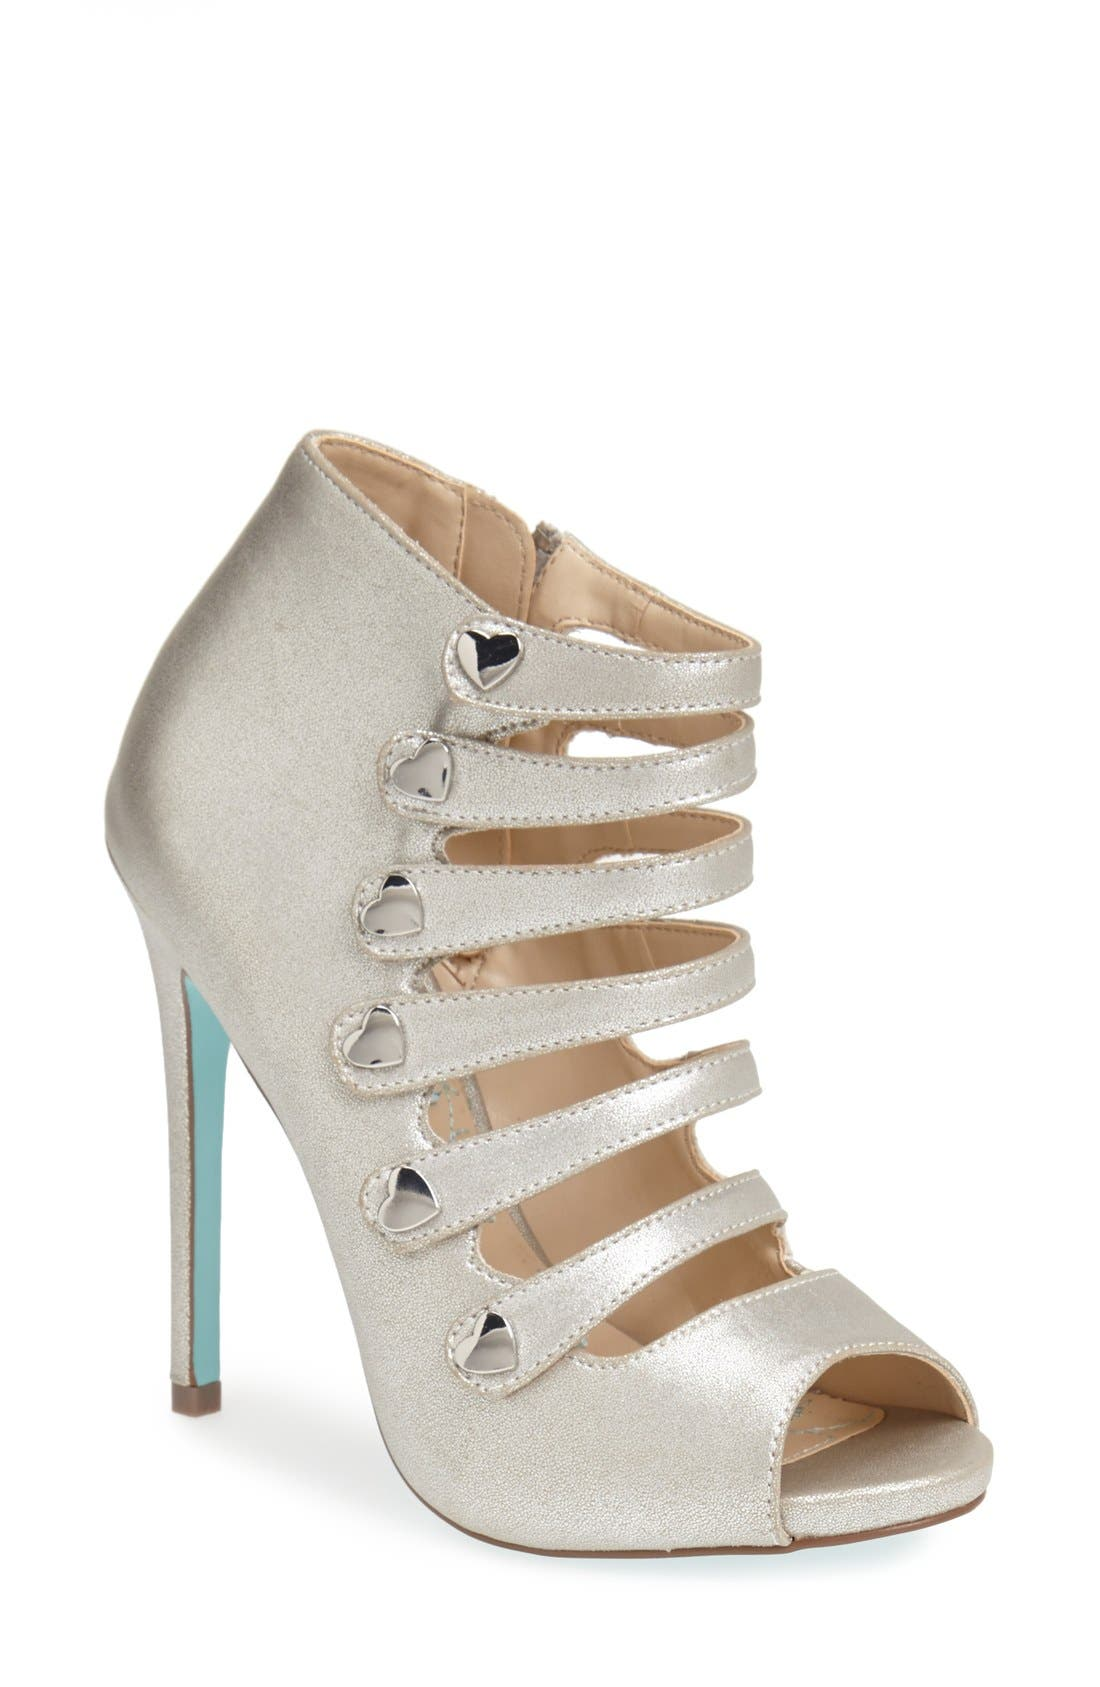 Alternate Image 1 Selected - Blue by Betsey Johnson 'Heart' Strappy Sandal (Women)